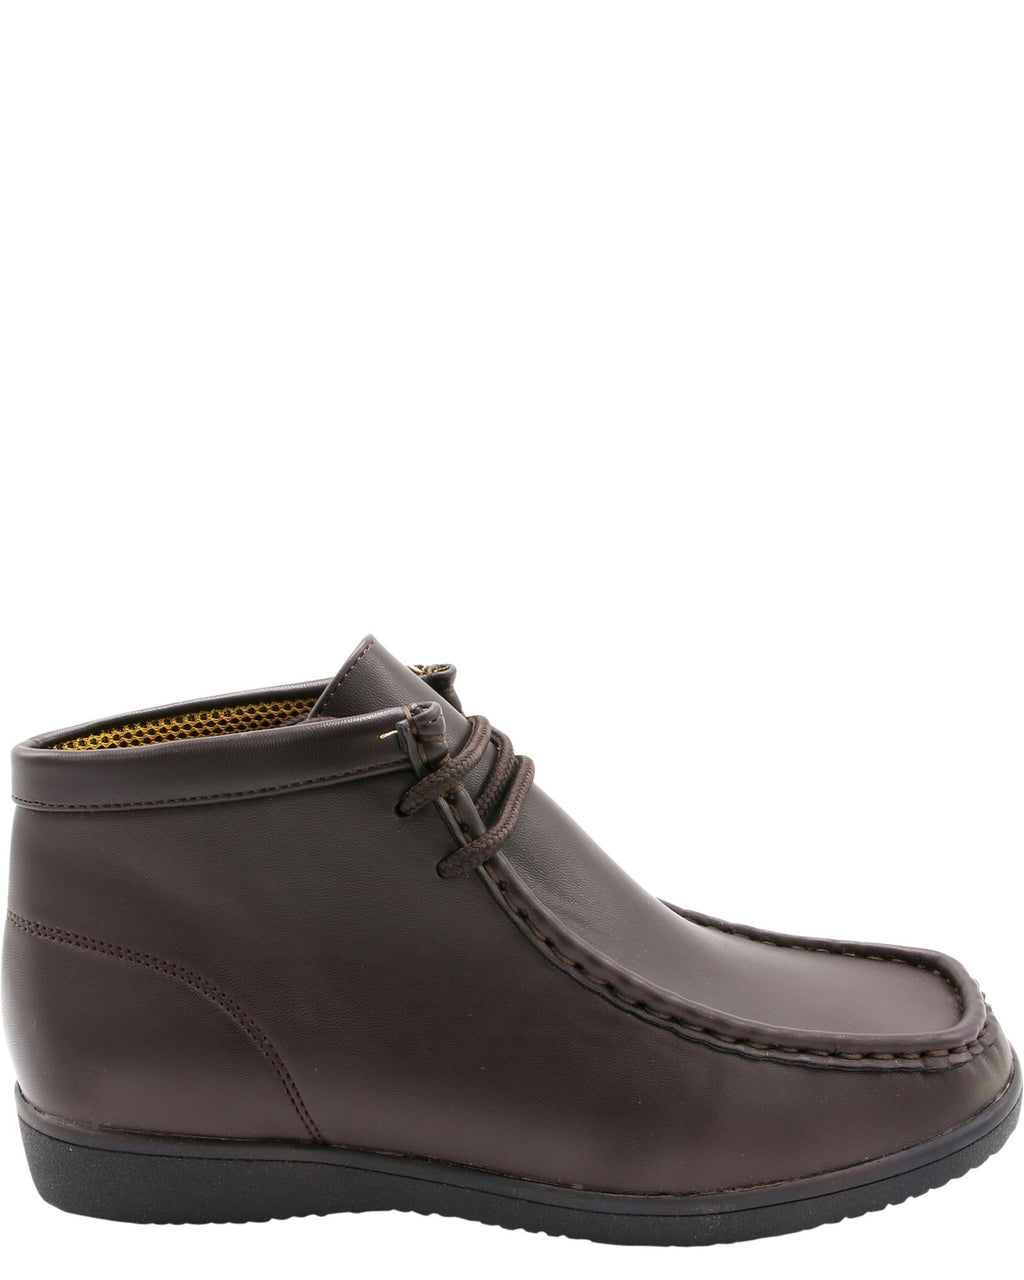 Boy's Wallabee Chukka Boot (Grade School)